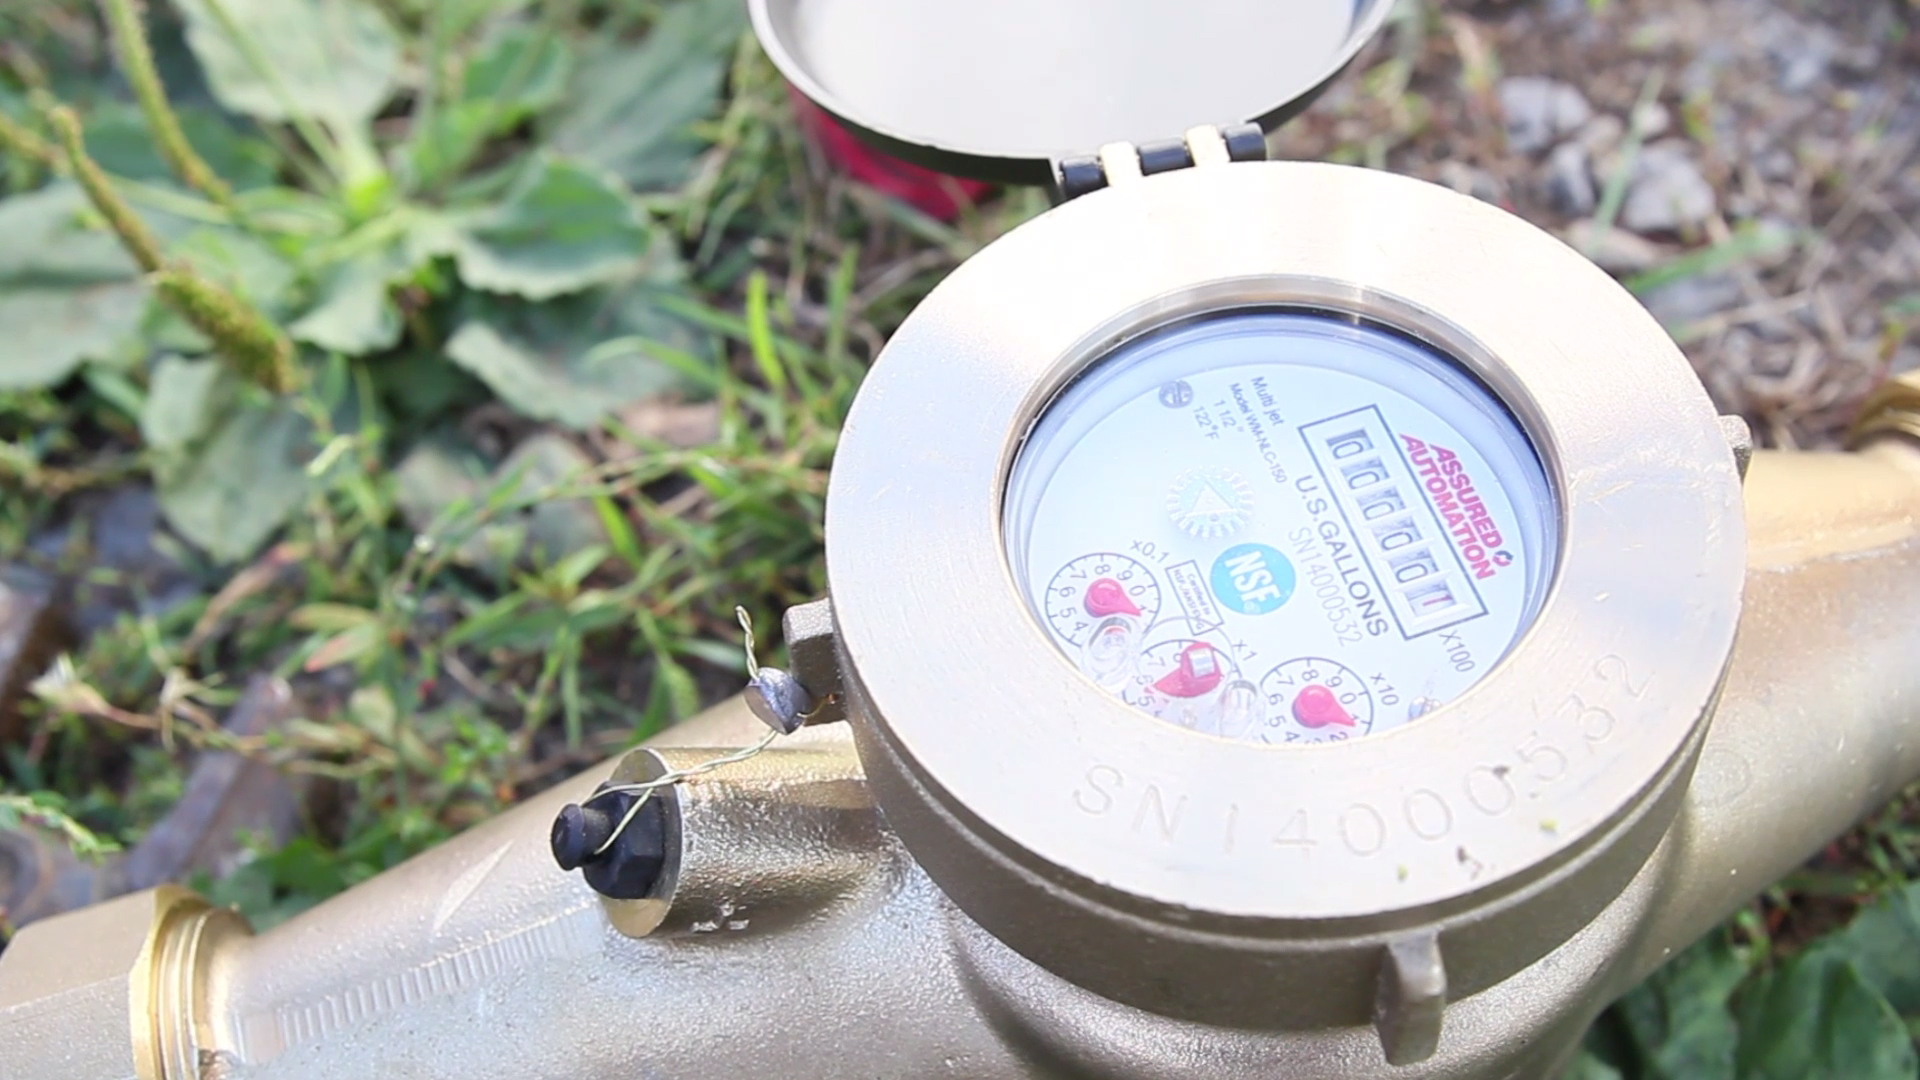 Using water meters helps quantify water consumption